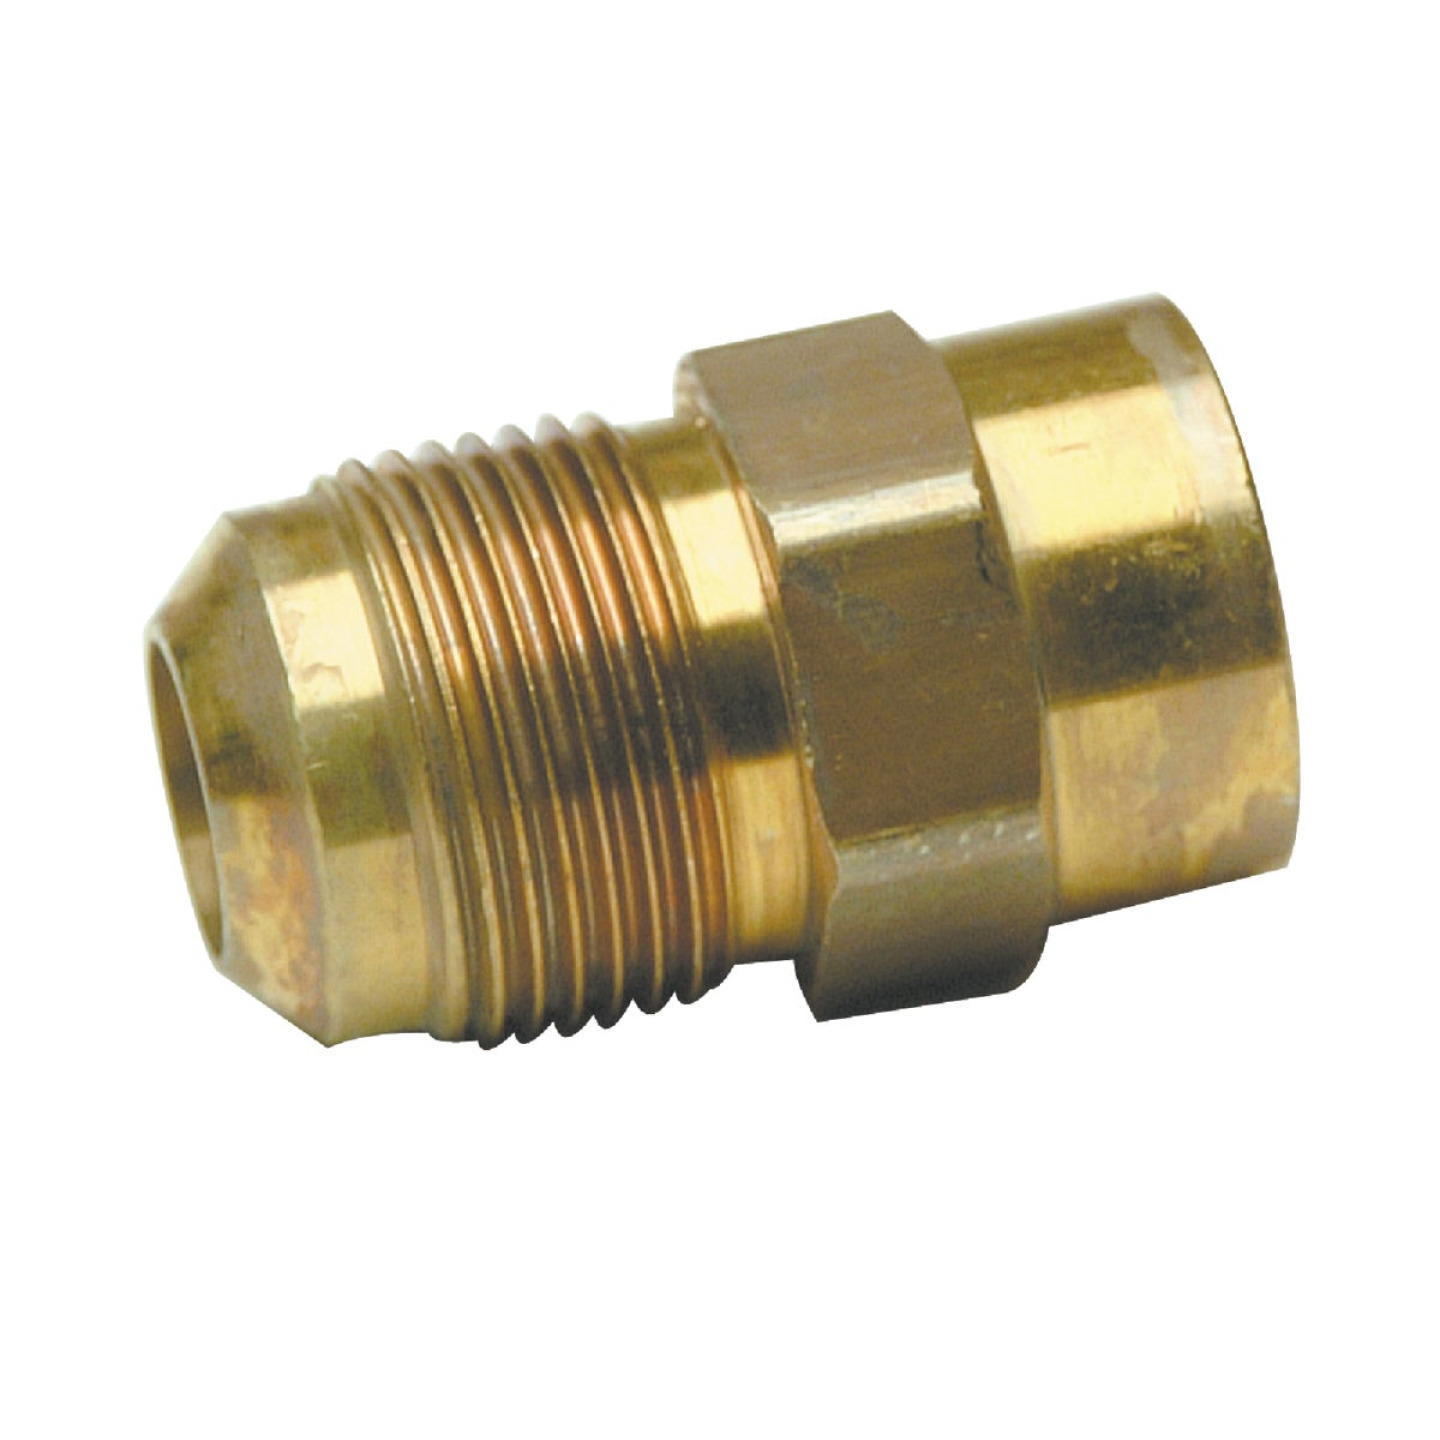 Dormont 5/8 In. OD Male Flare x 1/2 In. FIP Zinc-Plated Carbon Steel Adapter Gas Fitting, Bulk Image 1